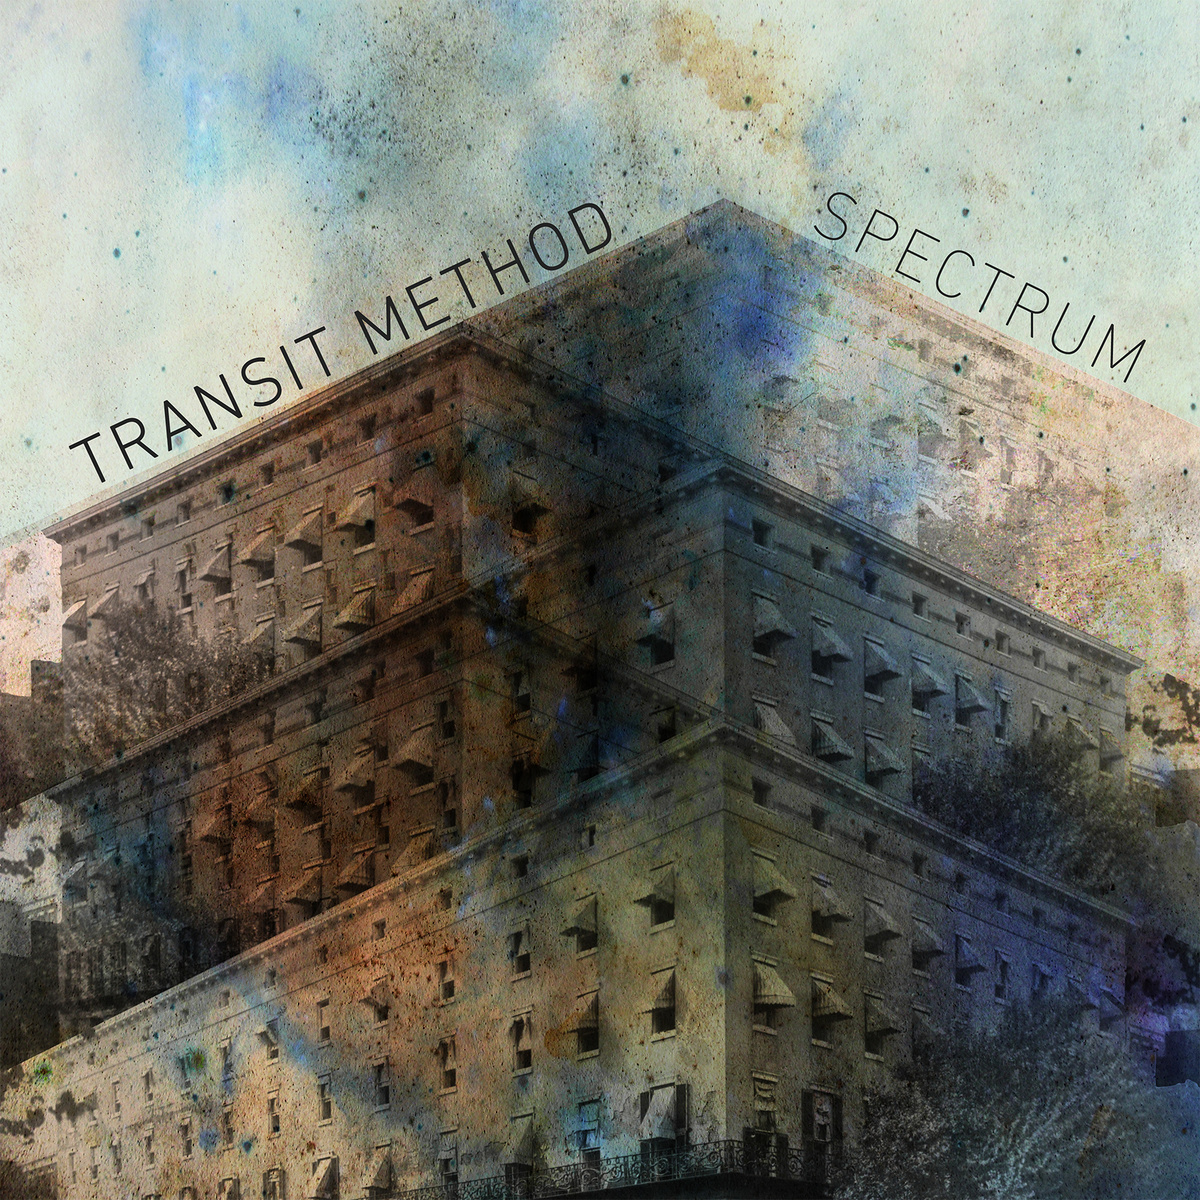 Transit Method — Spectrum